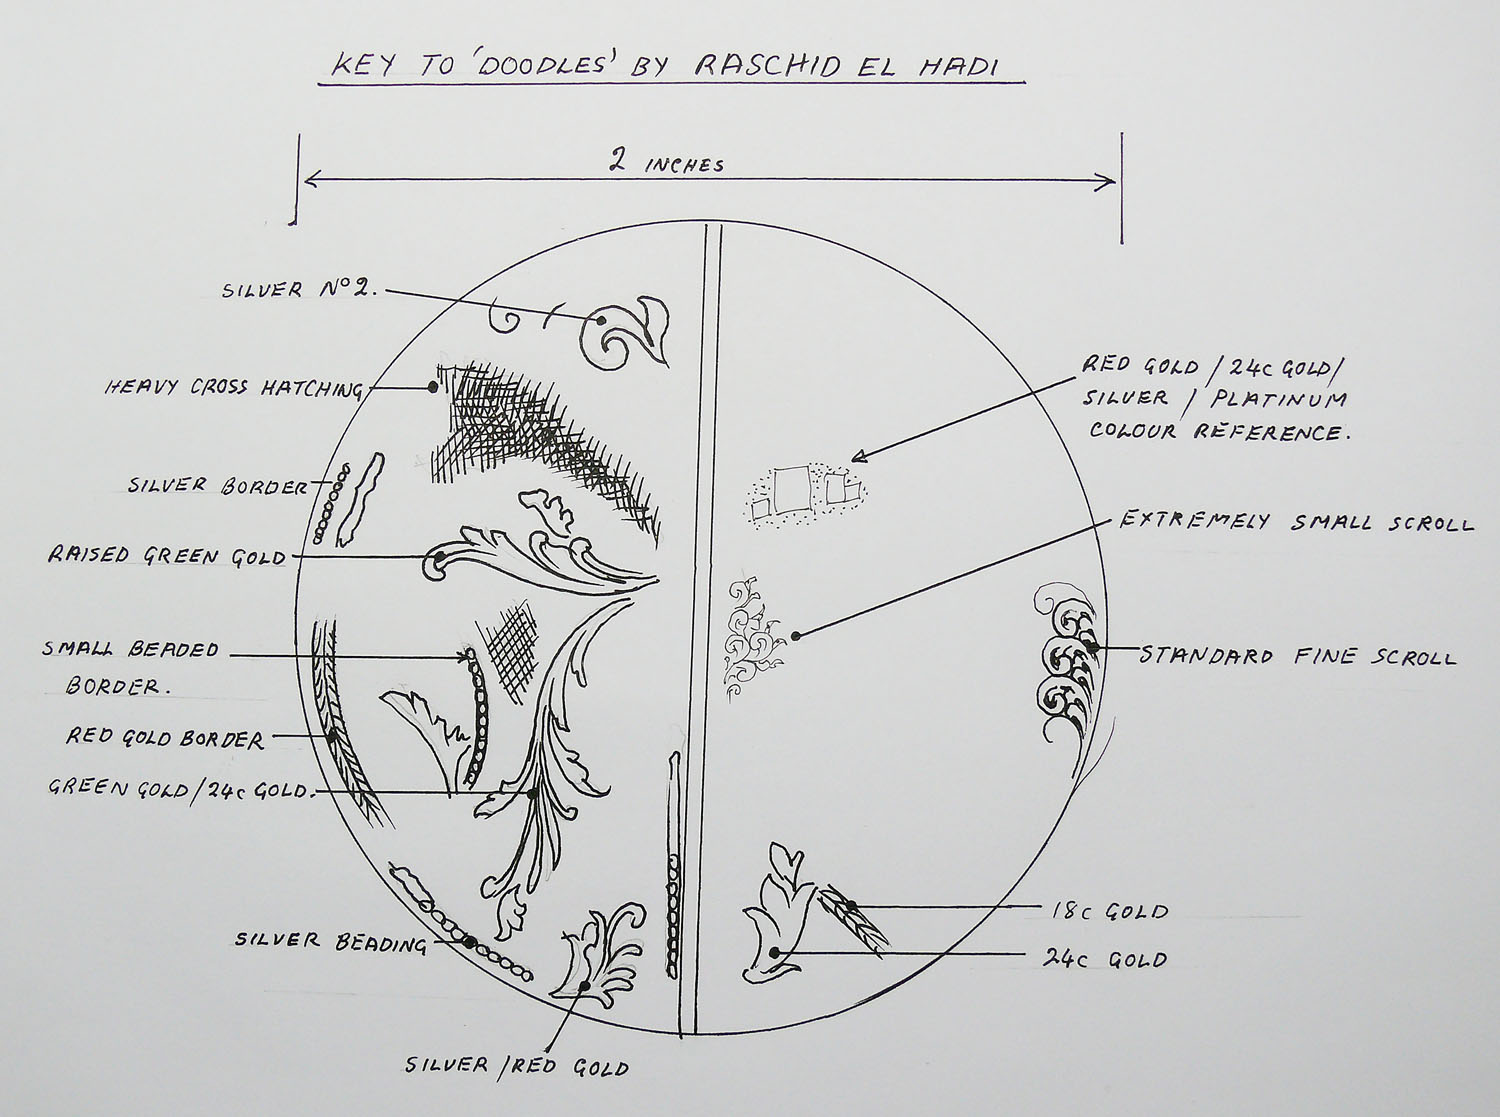 A Diagram explaining the doodles on vice.